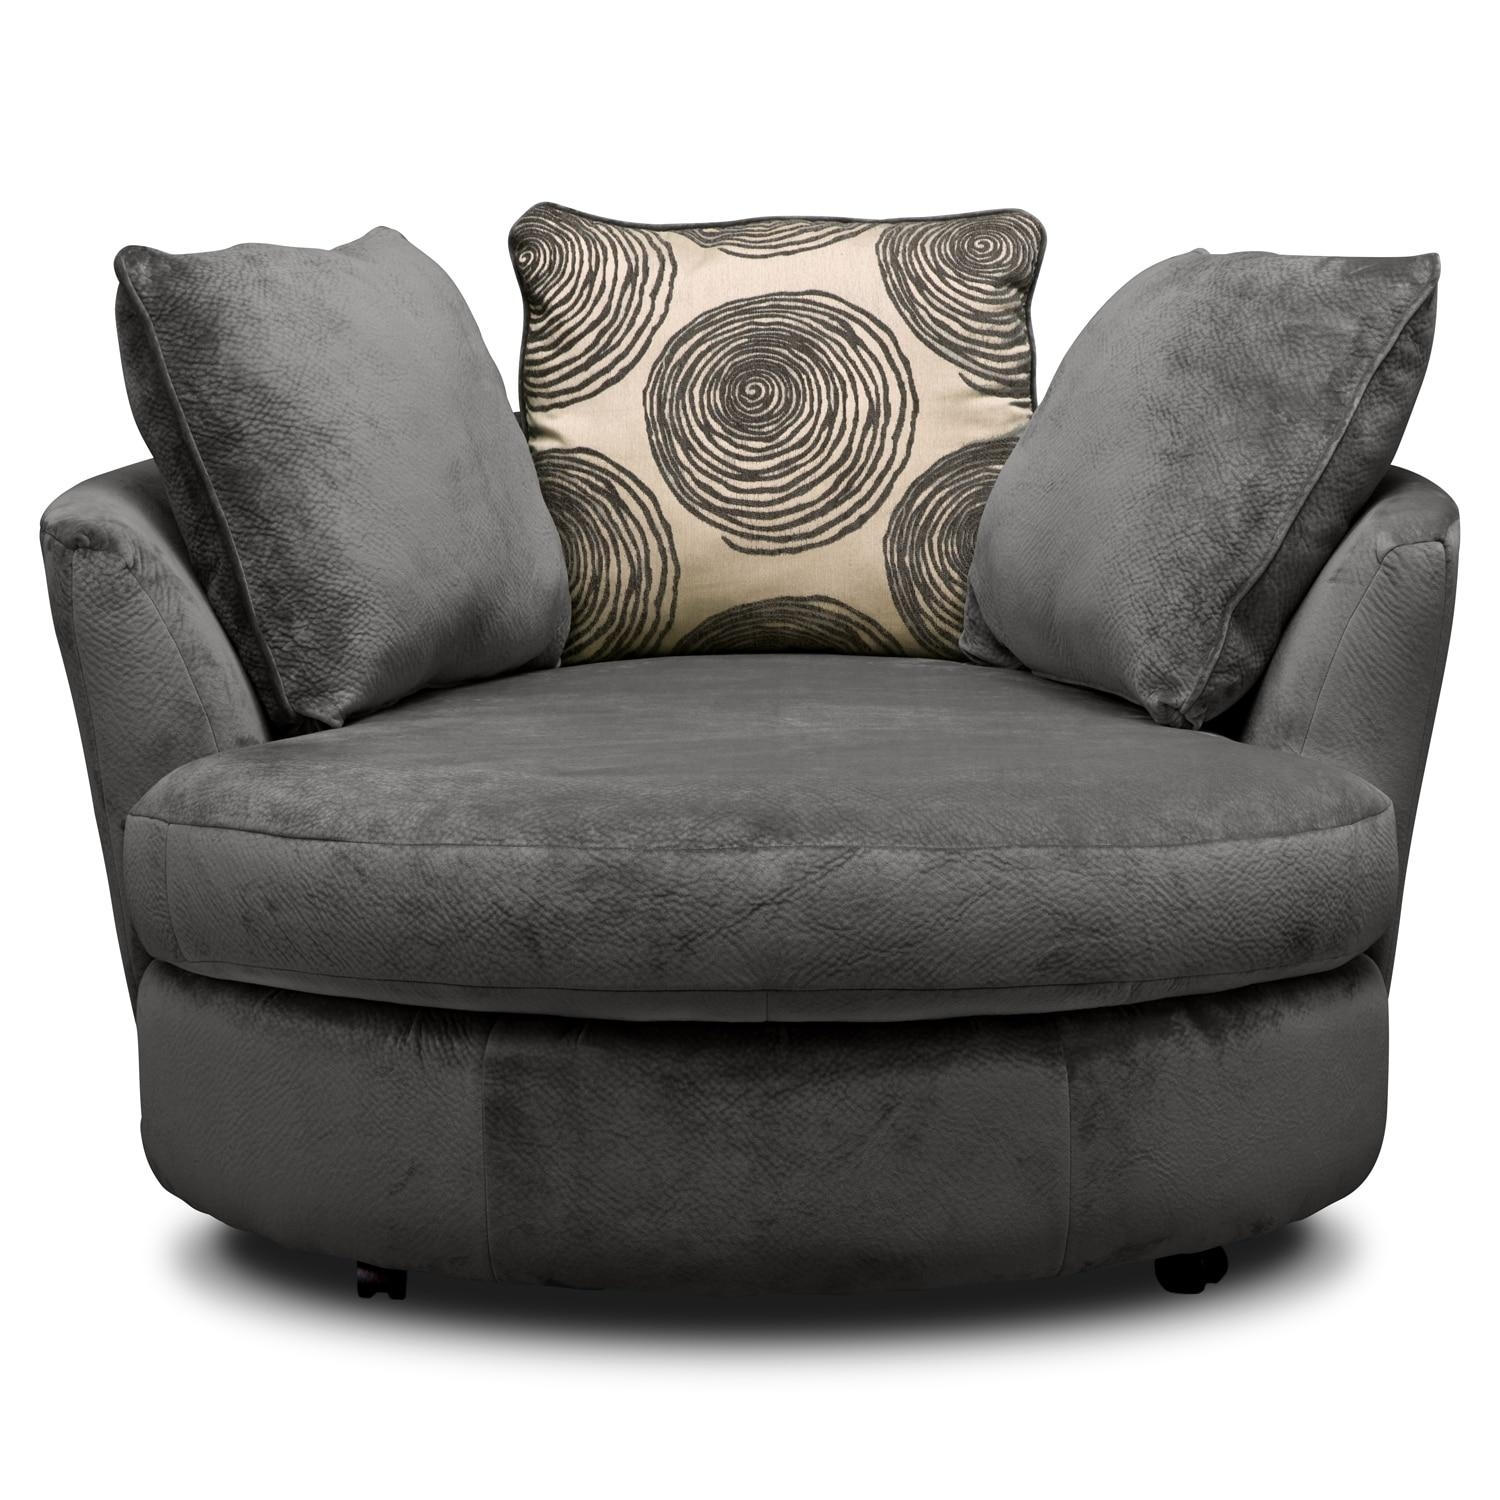 Swivel Sofa Chair – Sofa Minimalist Within Cuddler Swivel Sofa Chairs (View 1 of 20)